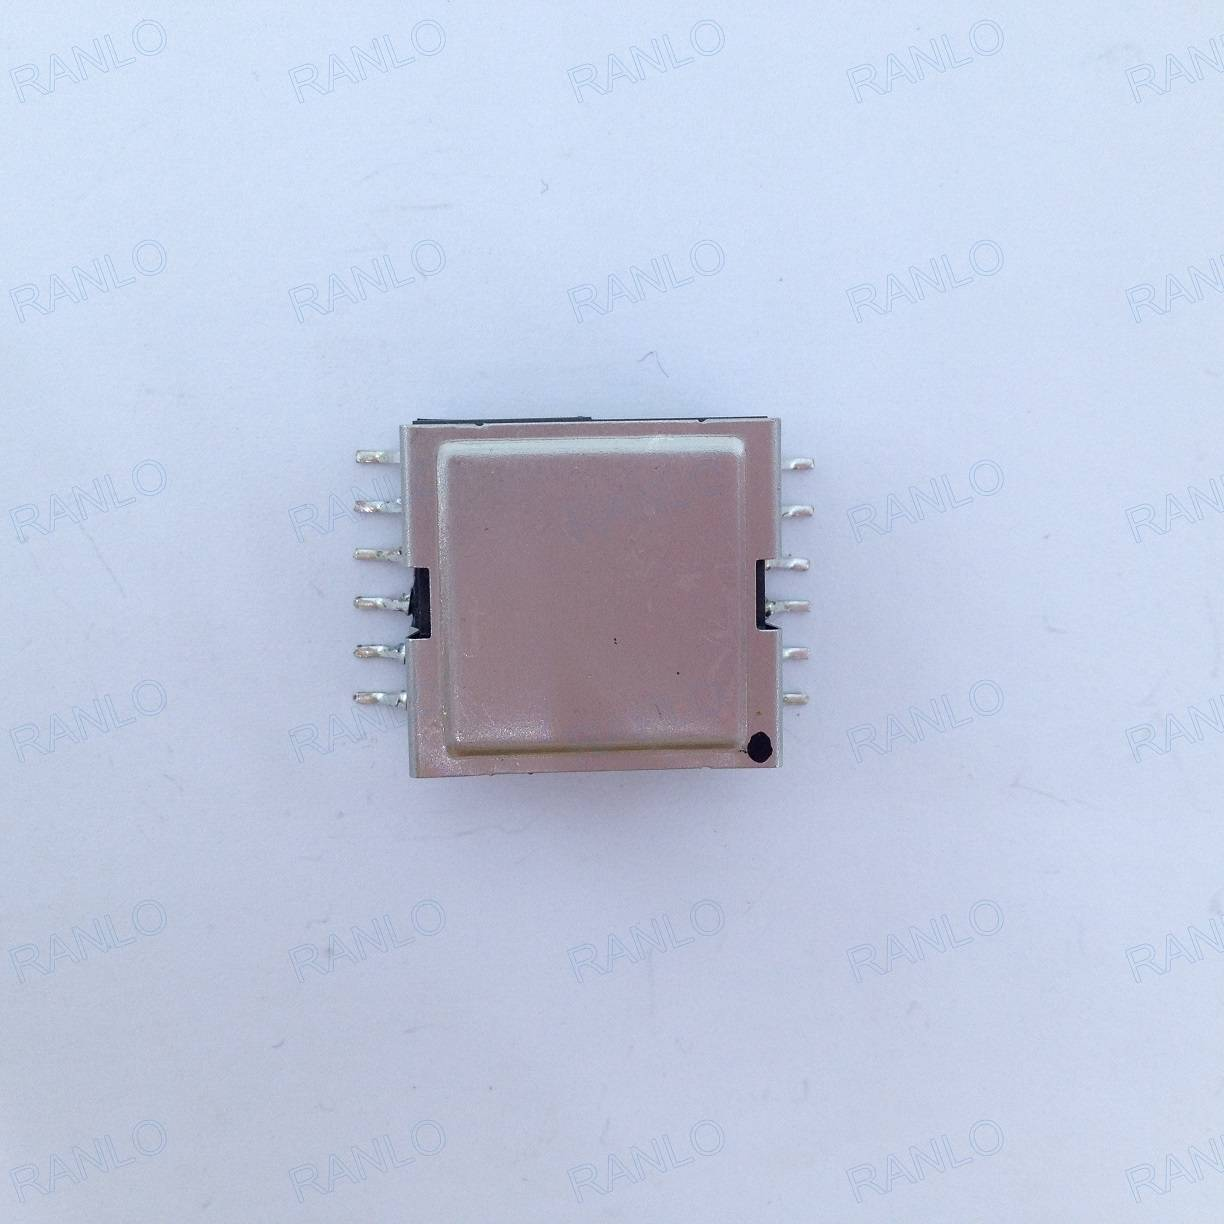 EFD2012 (CEFD2012 Hate)  SMT high frequency switch power supply transformer for industrial equipment